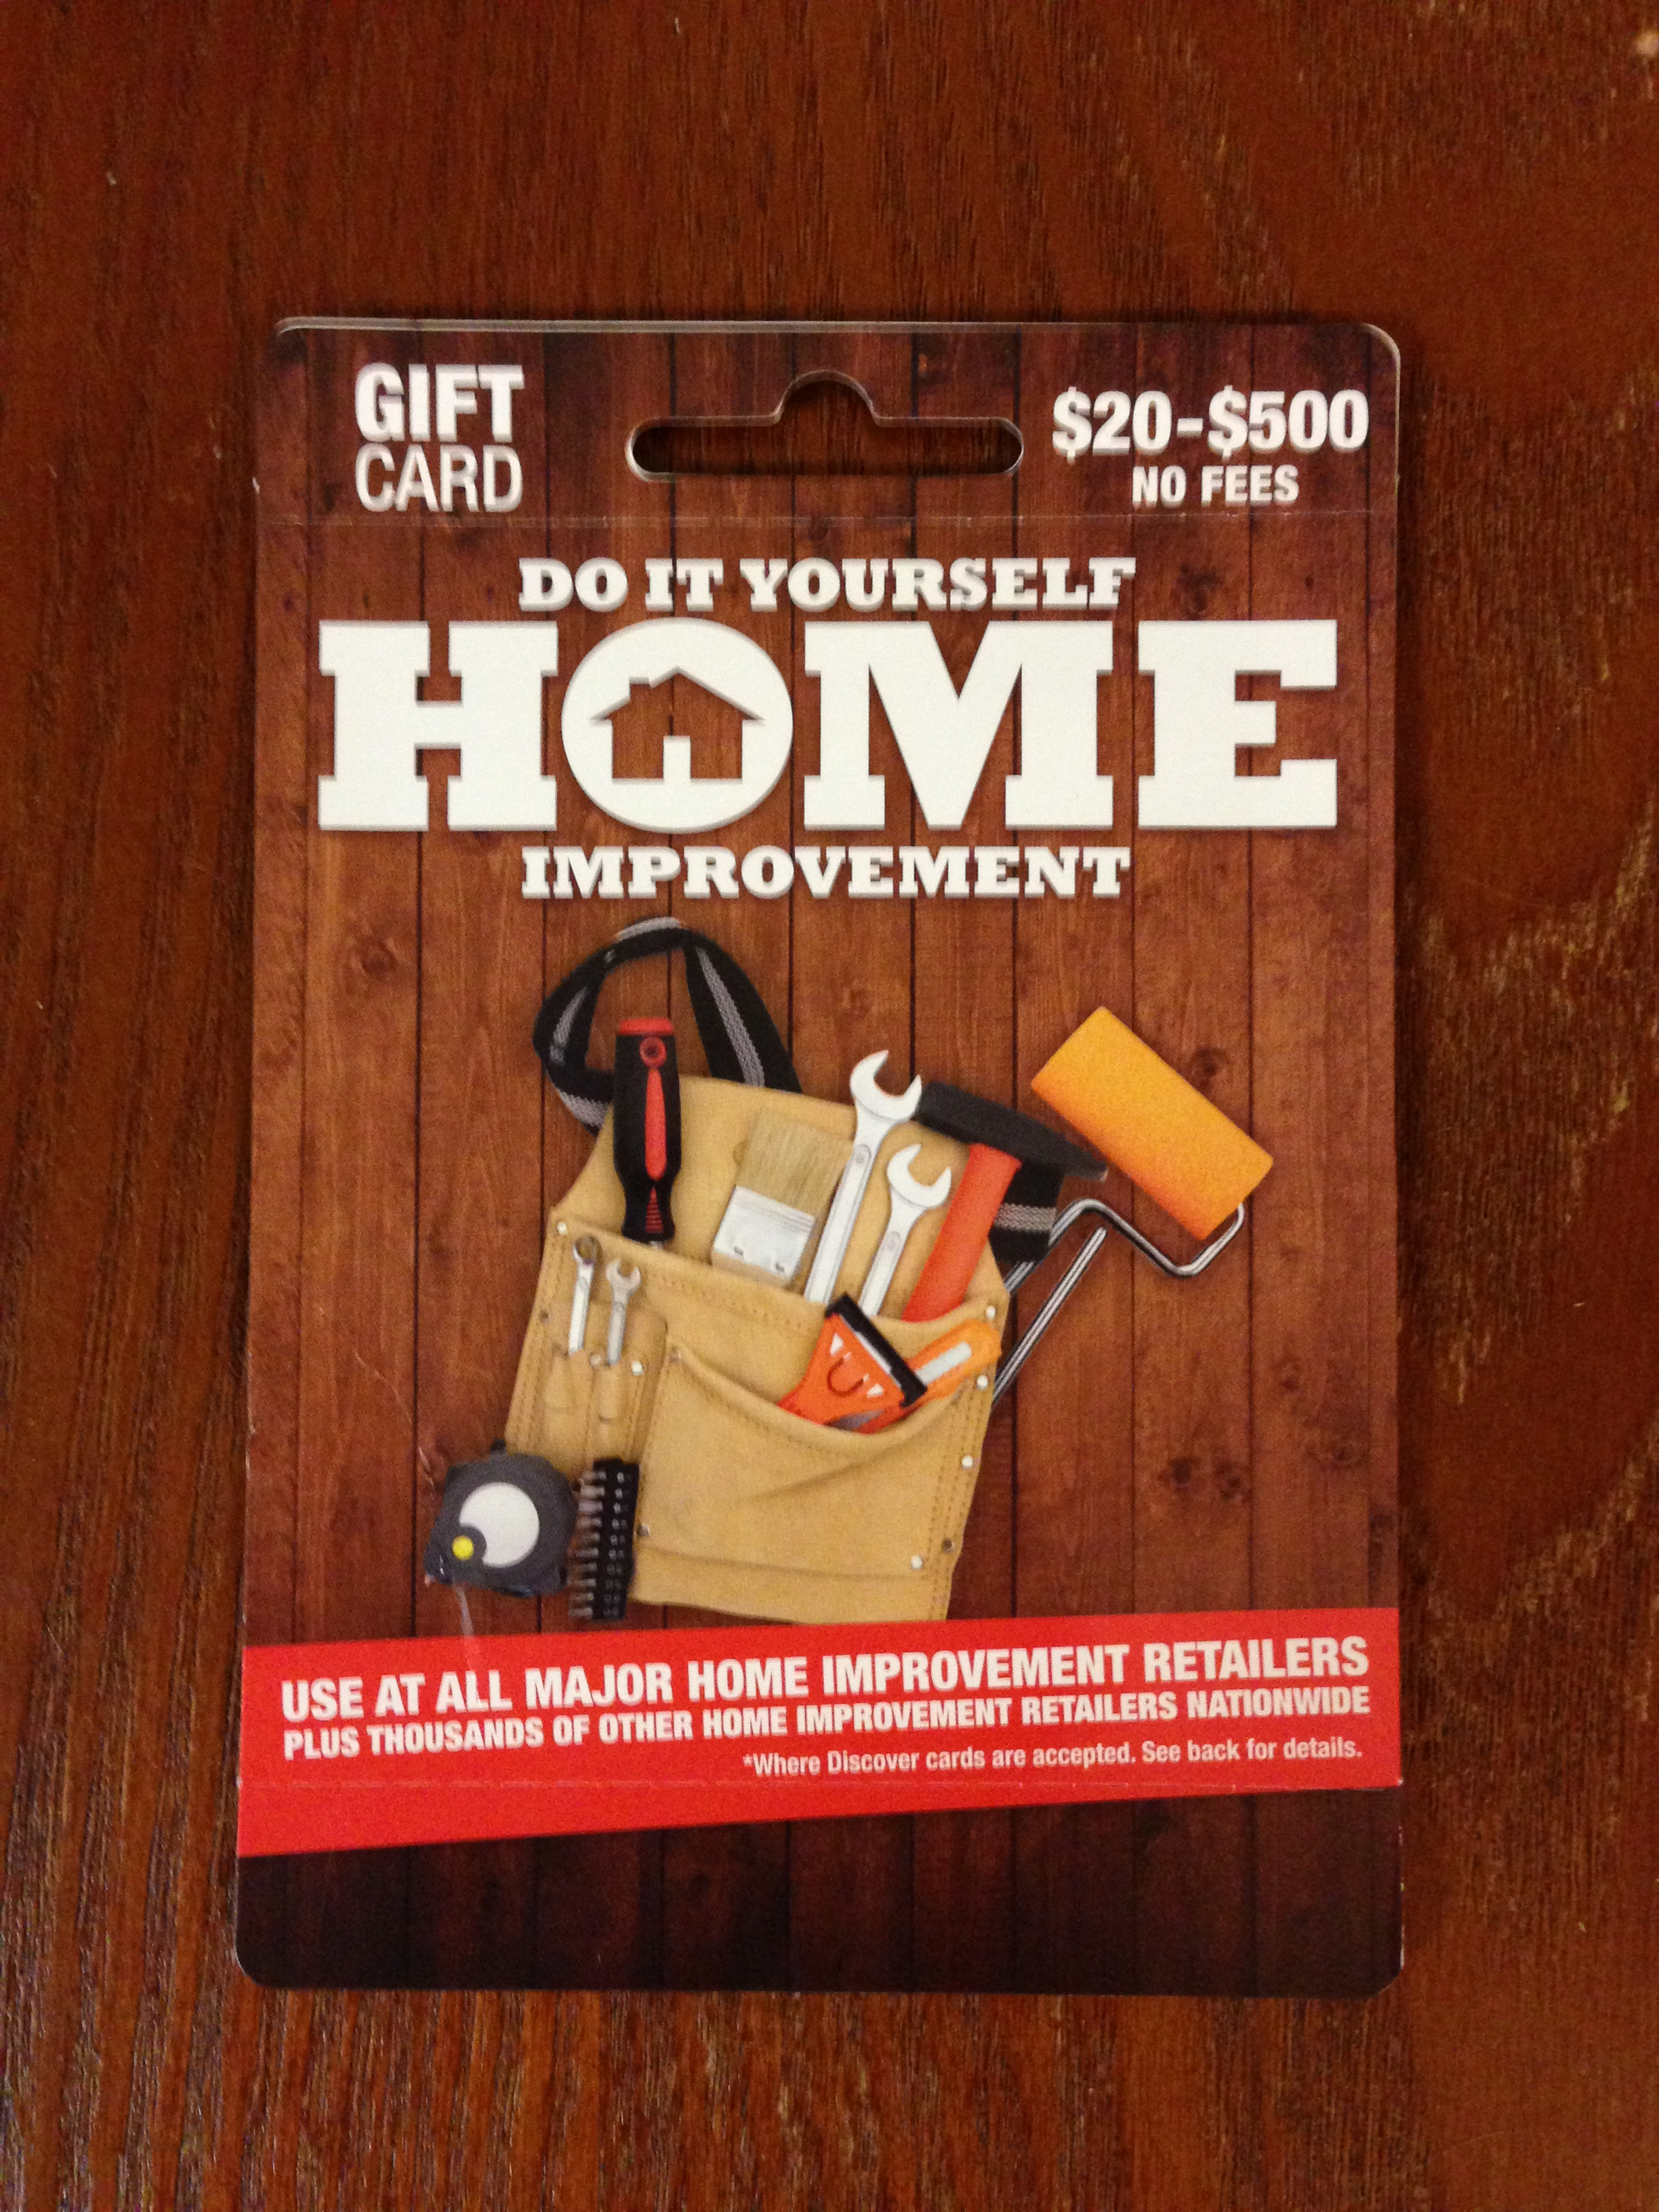 Home Improvement Gift Card Now Allows You To Set A Pin (Free 5X ...